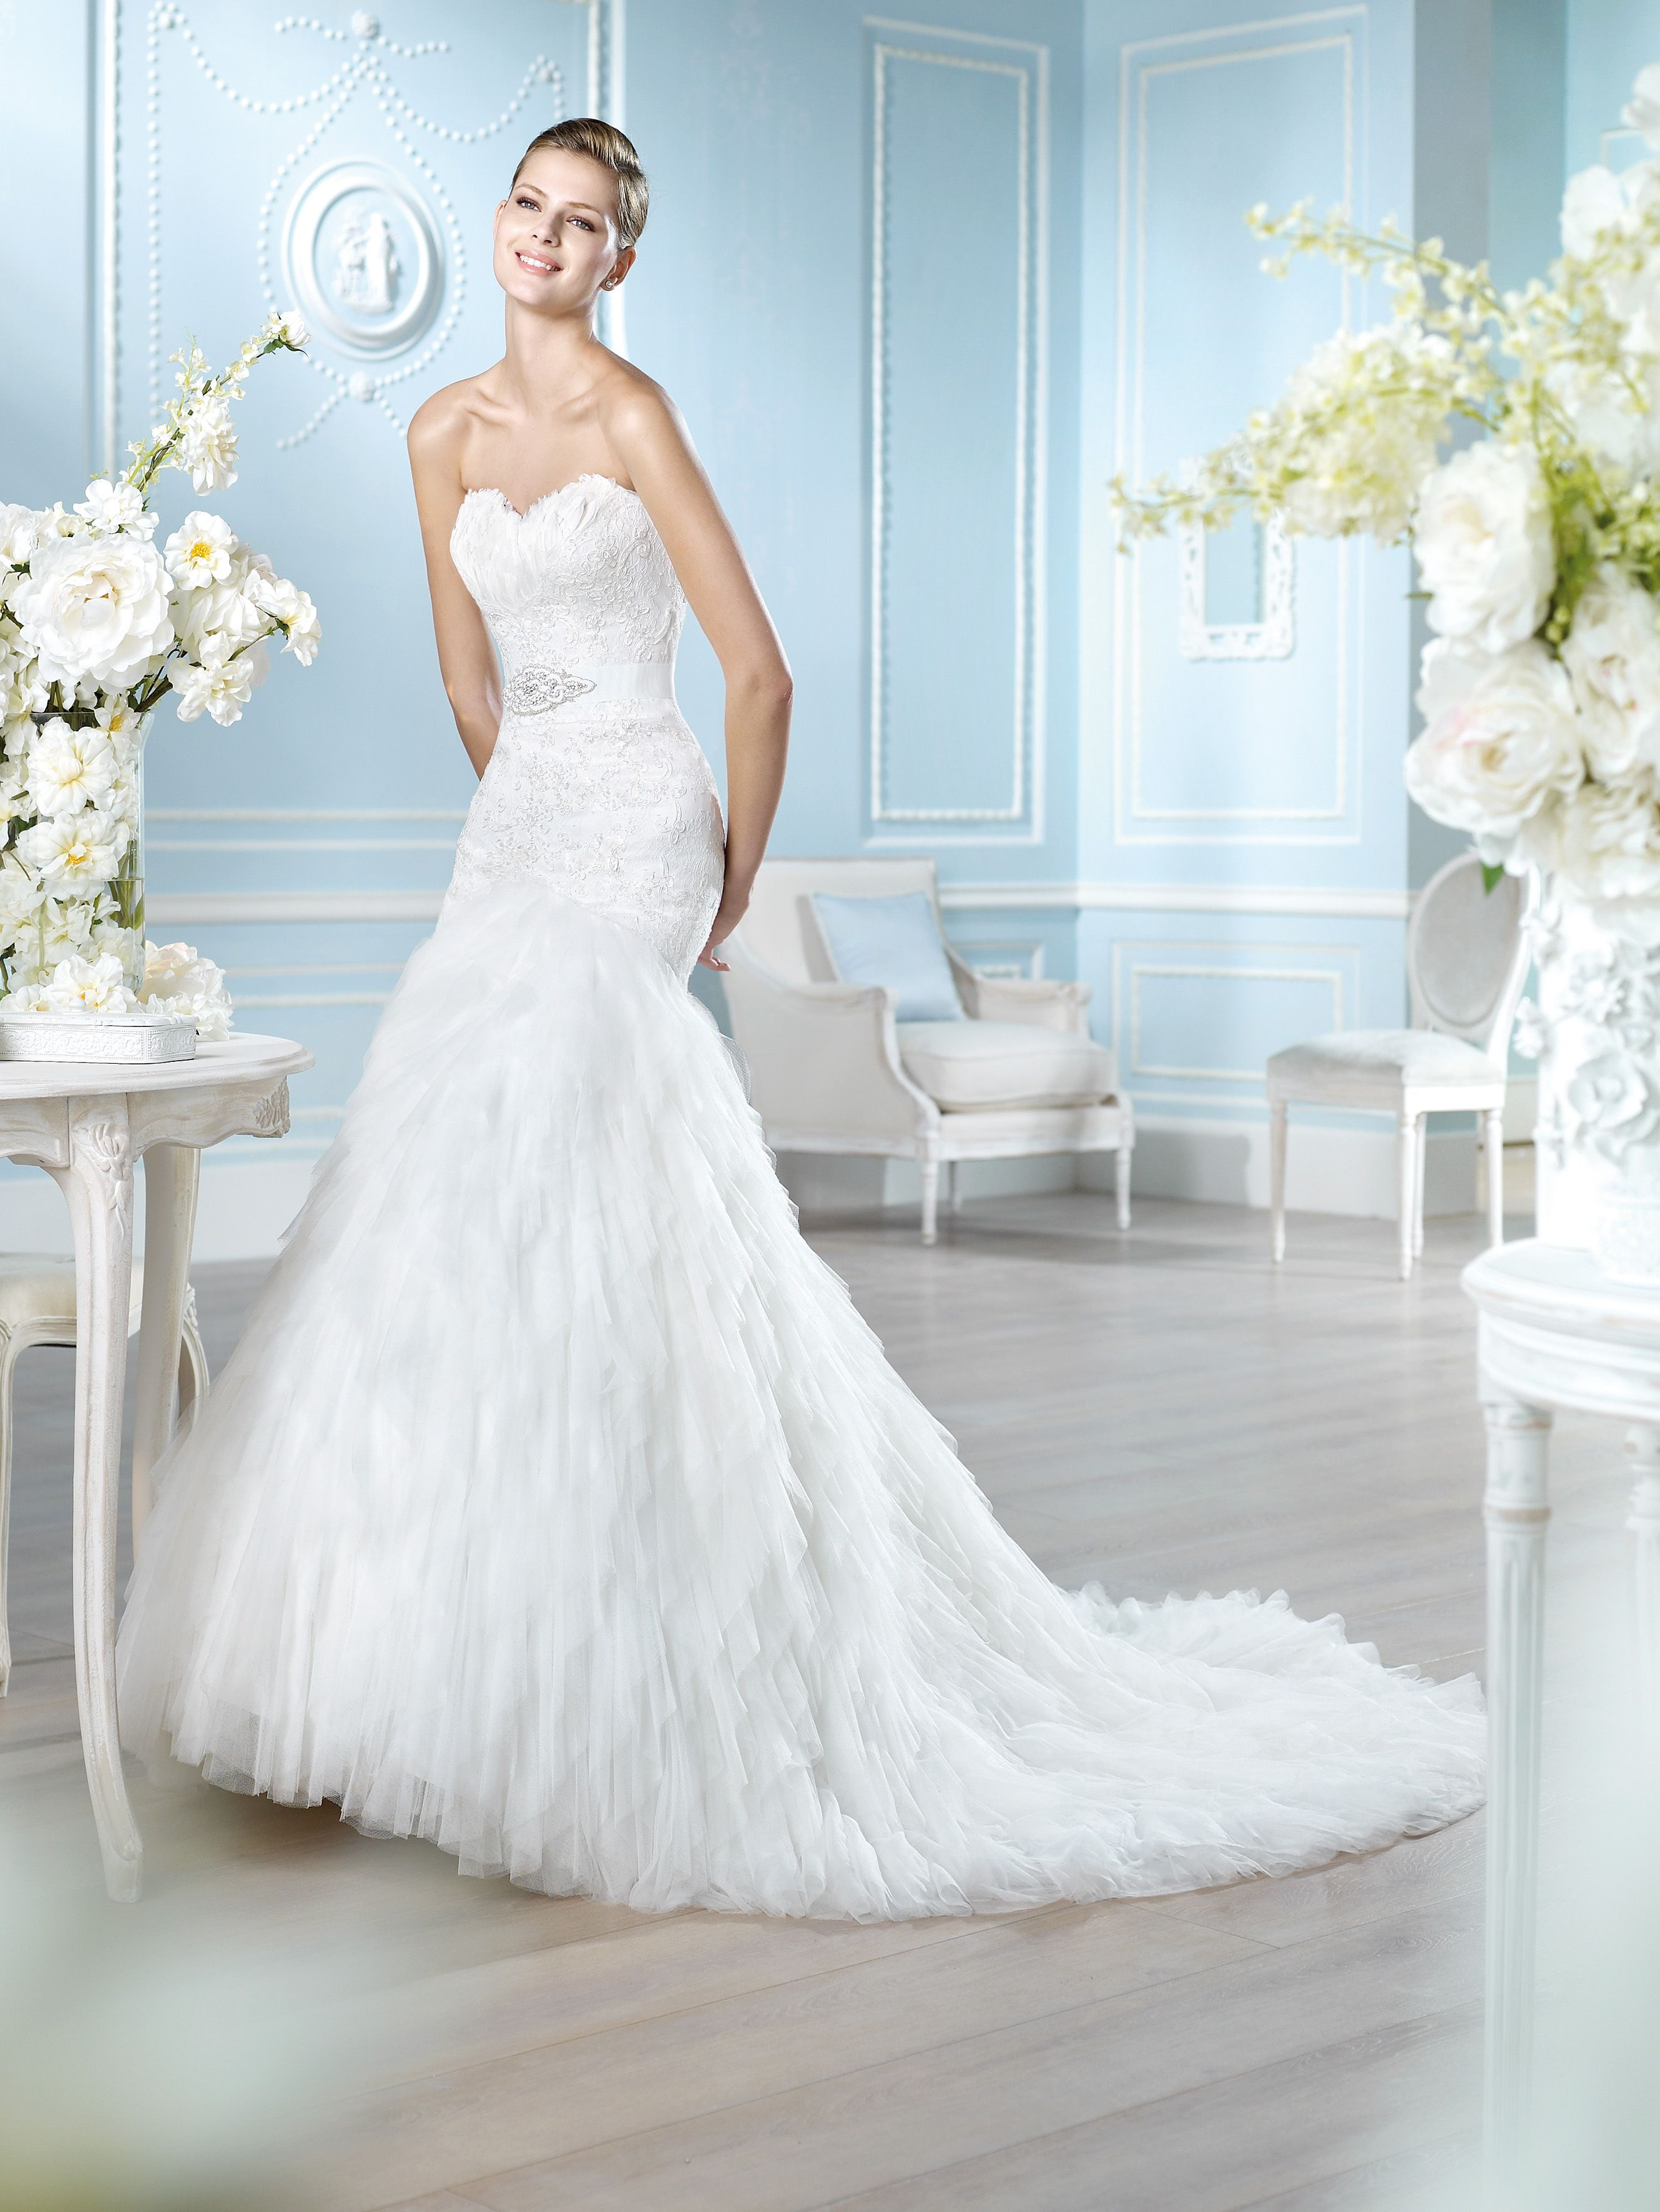 """Hangg"" stunning fishtail wedding dress with feathers at"